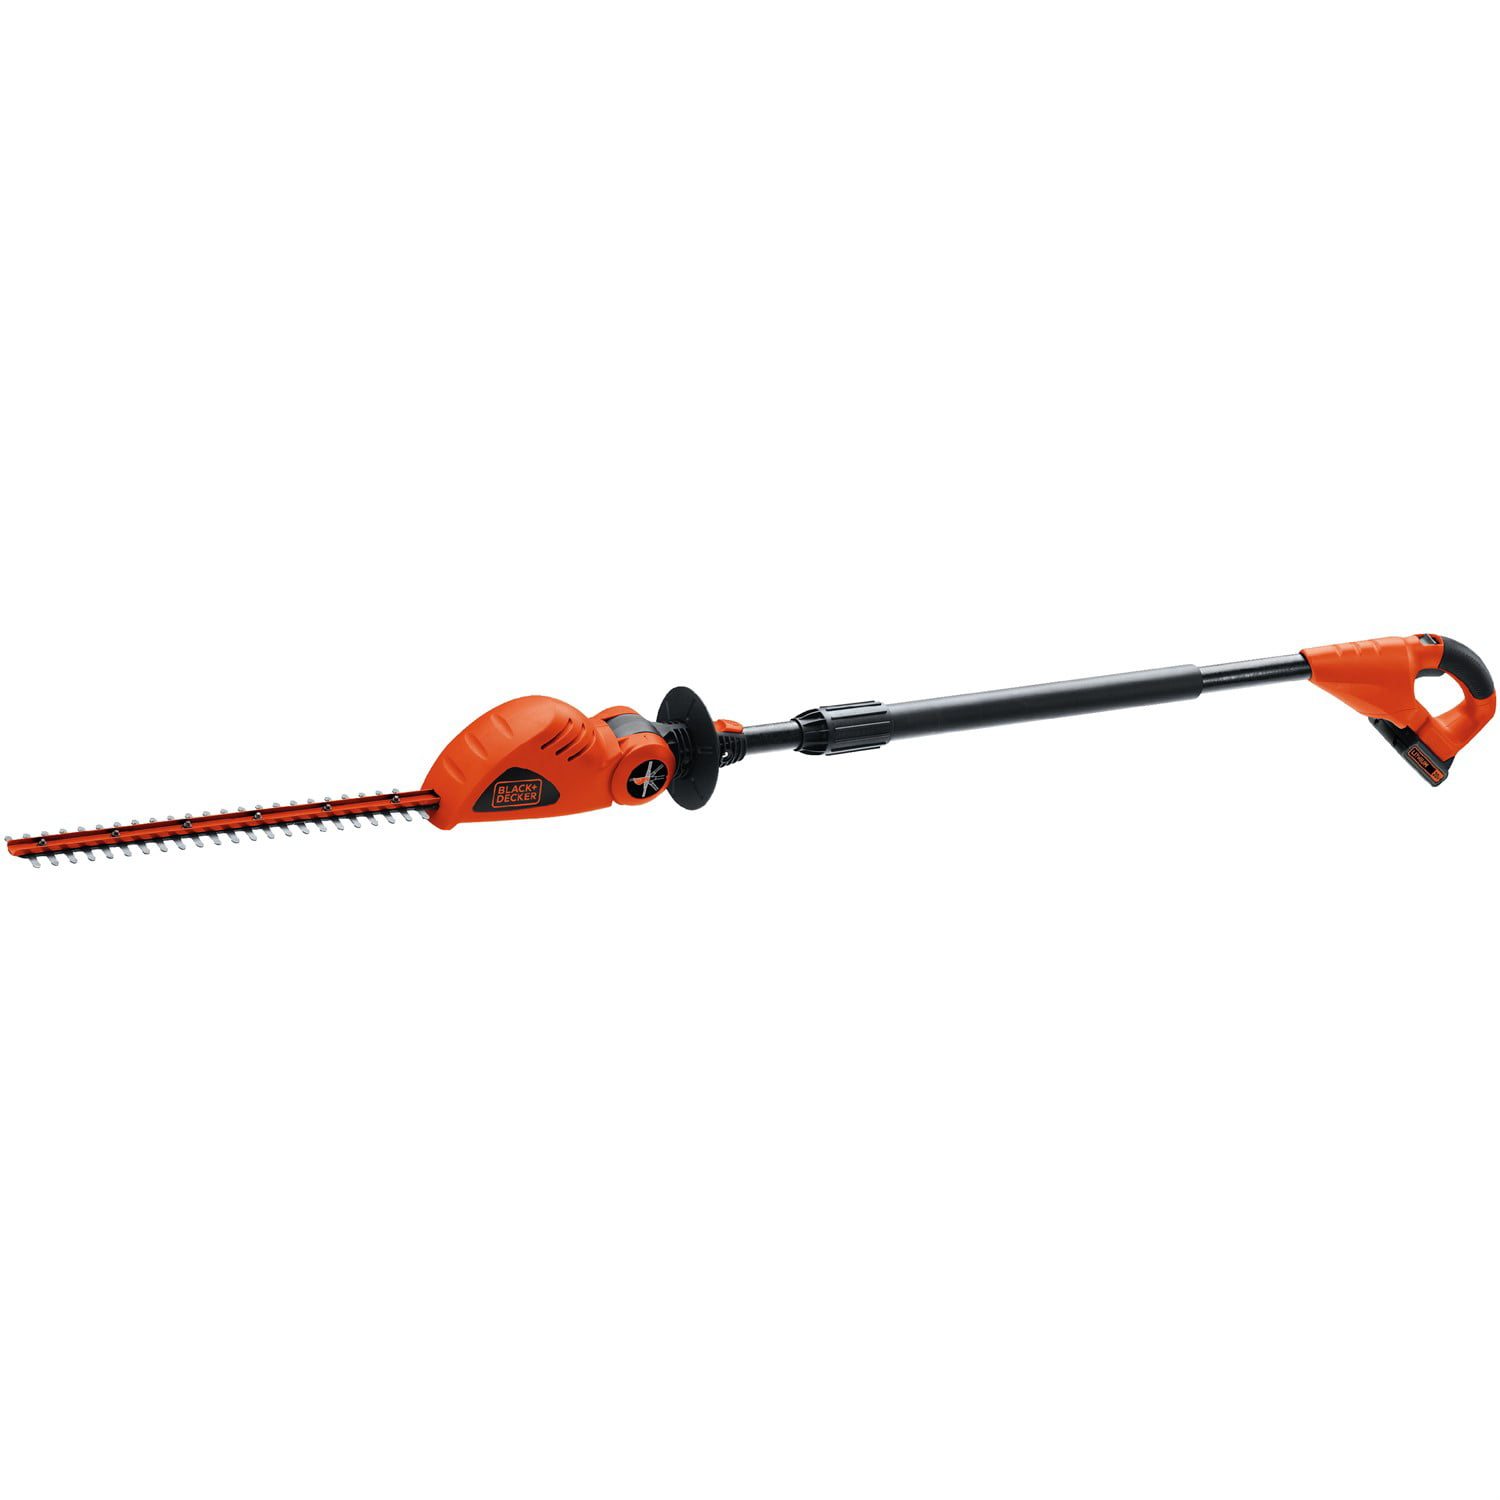 """Black & Decker LPHT120 20V MAX Lithium-Ion 18"""" Cordless Pole Hedge Trimmer by Hedge Trimmers"""